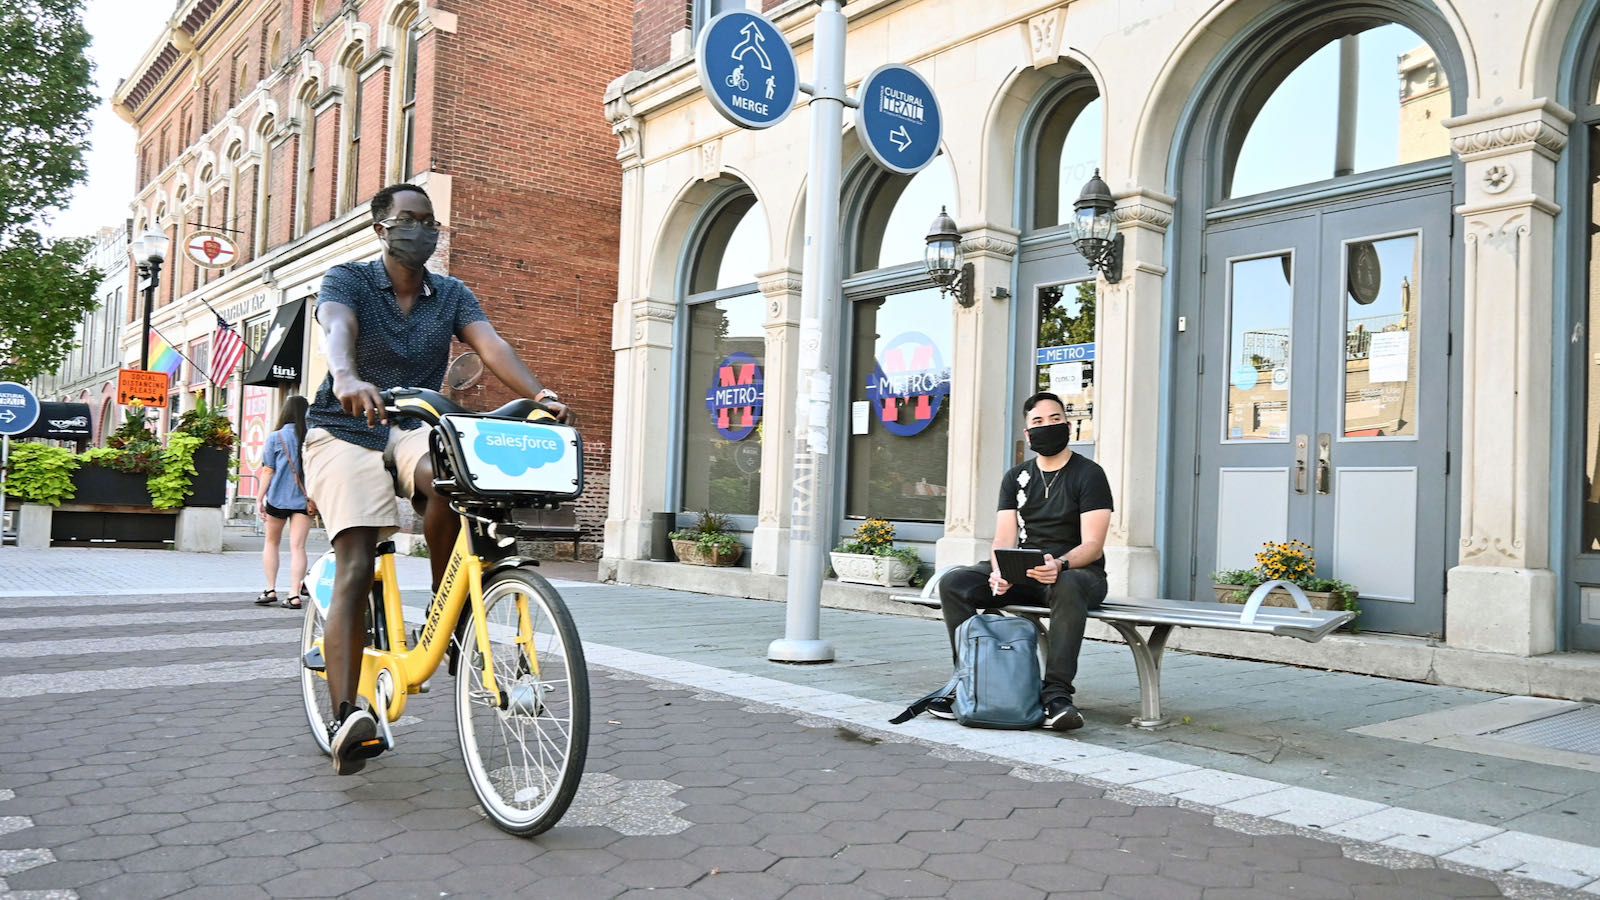 Indianapolis public space with biker